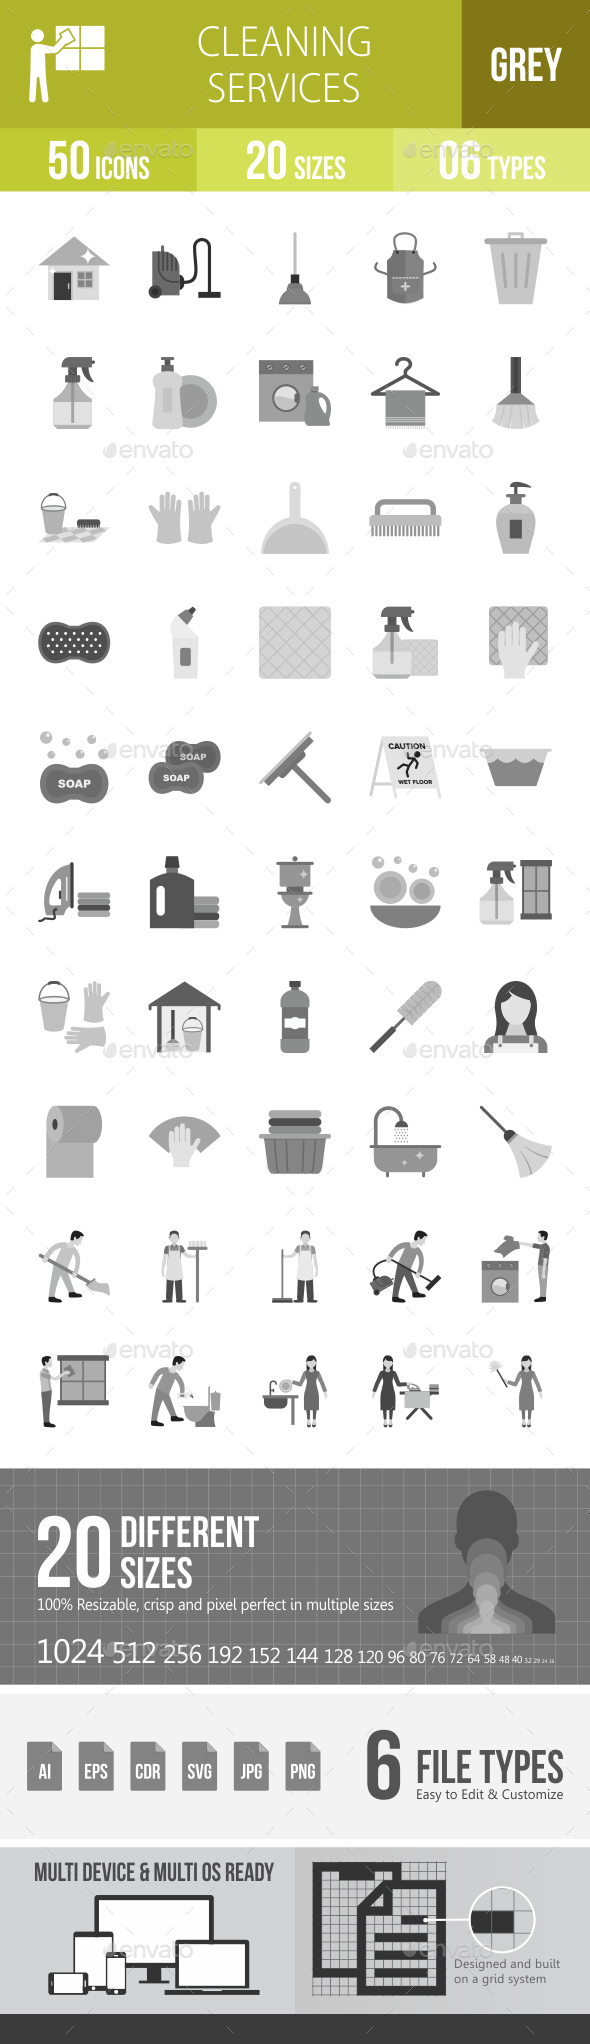 Cleaning Services Greyscale Icons - Icons